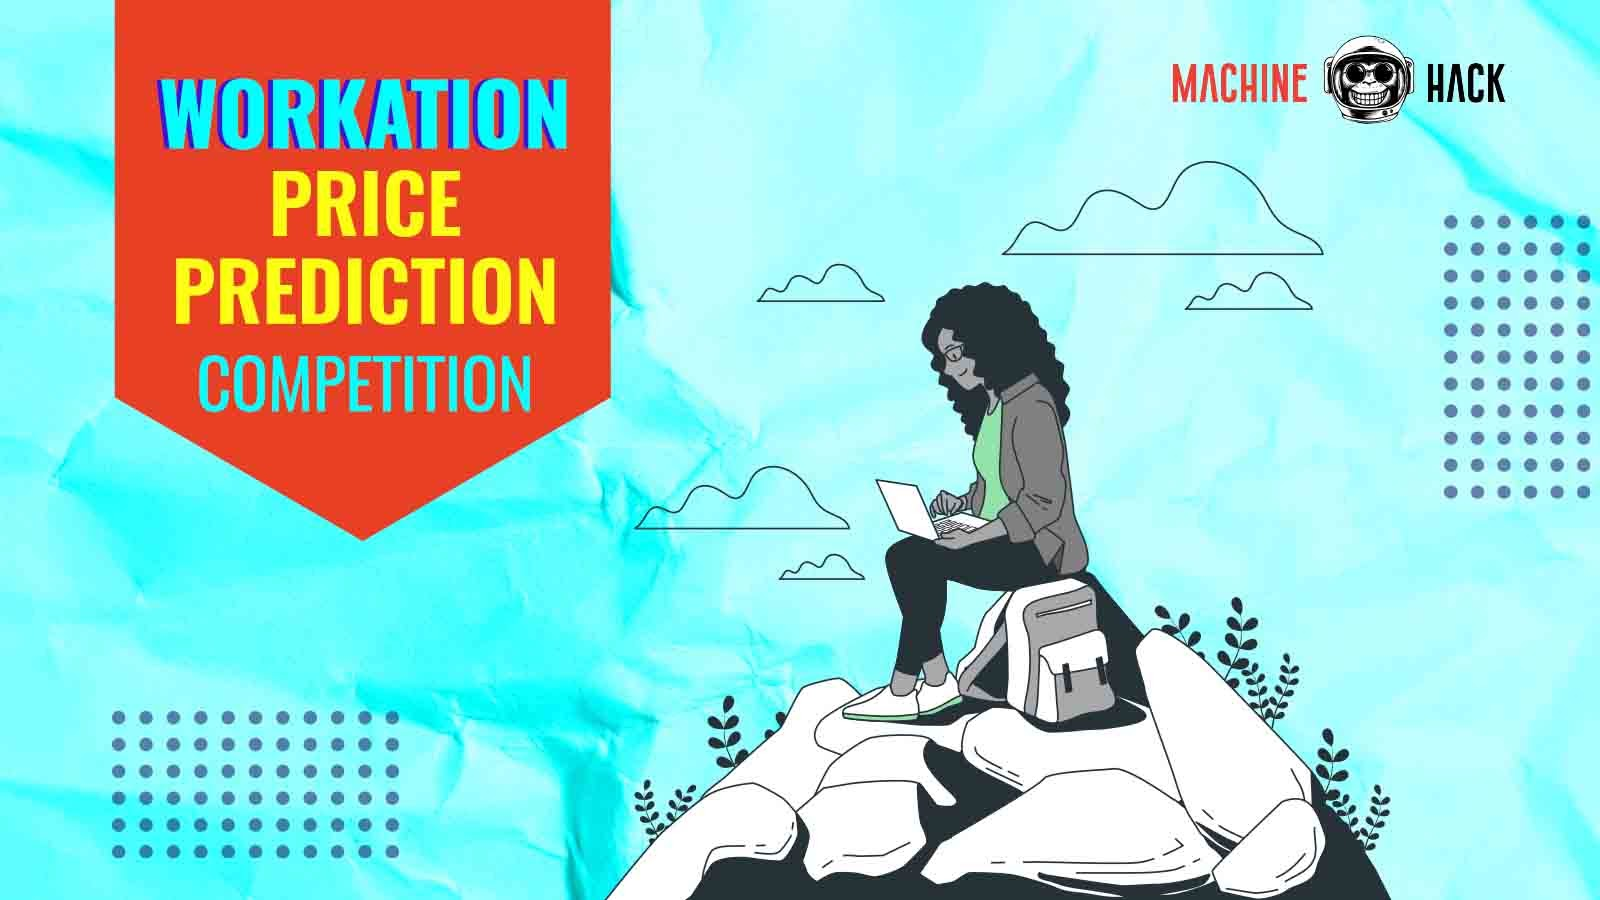 New Hackathon For Data Scientists — Workation Price Prediction Challenge